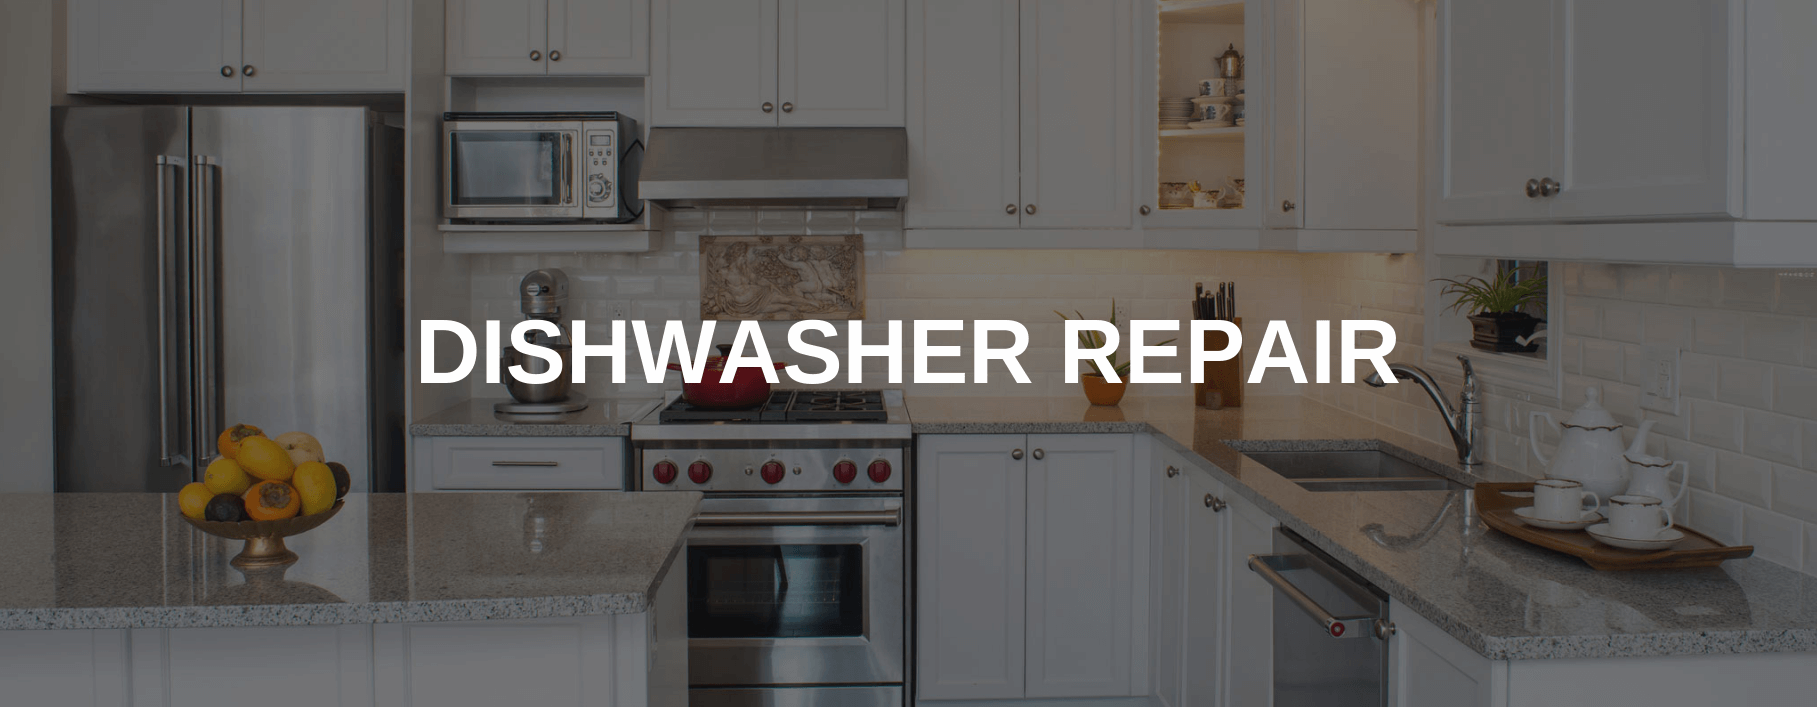 dishwasher repair council bluffs